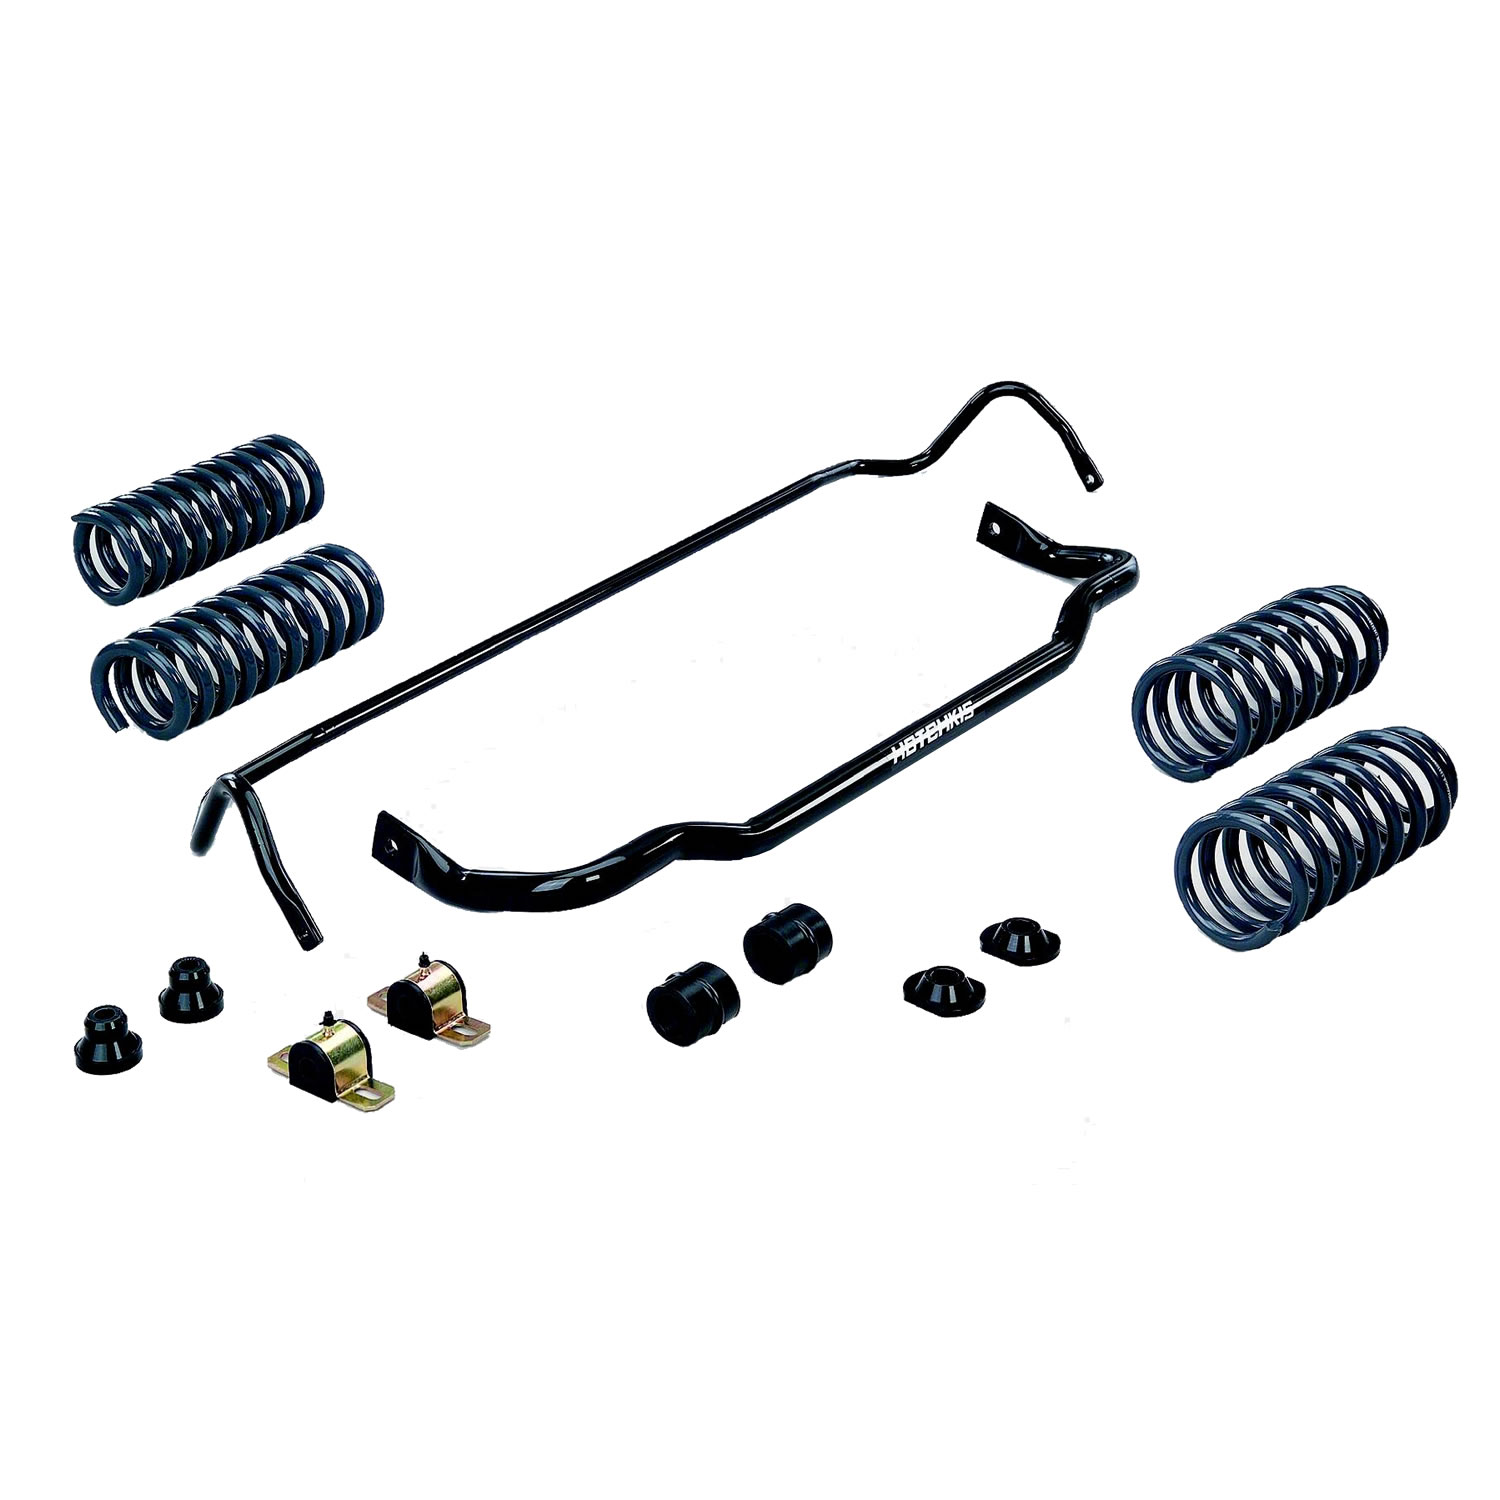 2008-2010 Challenger SRT8 Stage 1 Hotchkis TVS (Total Vehicle Suspension) System